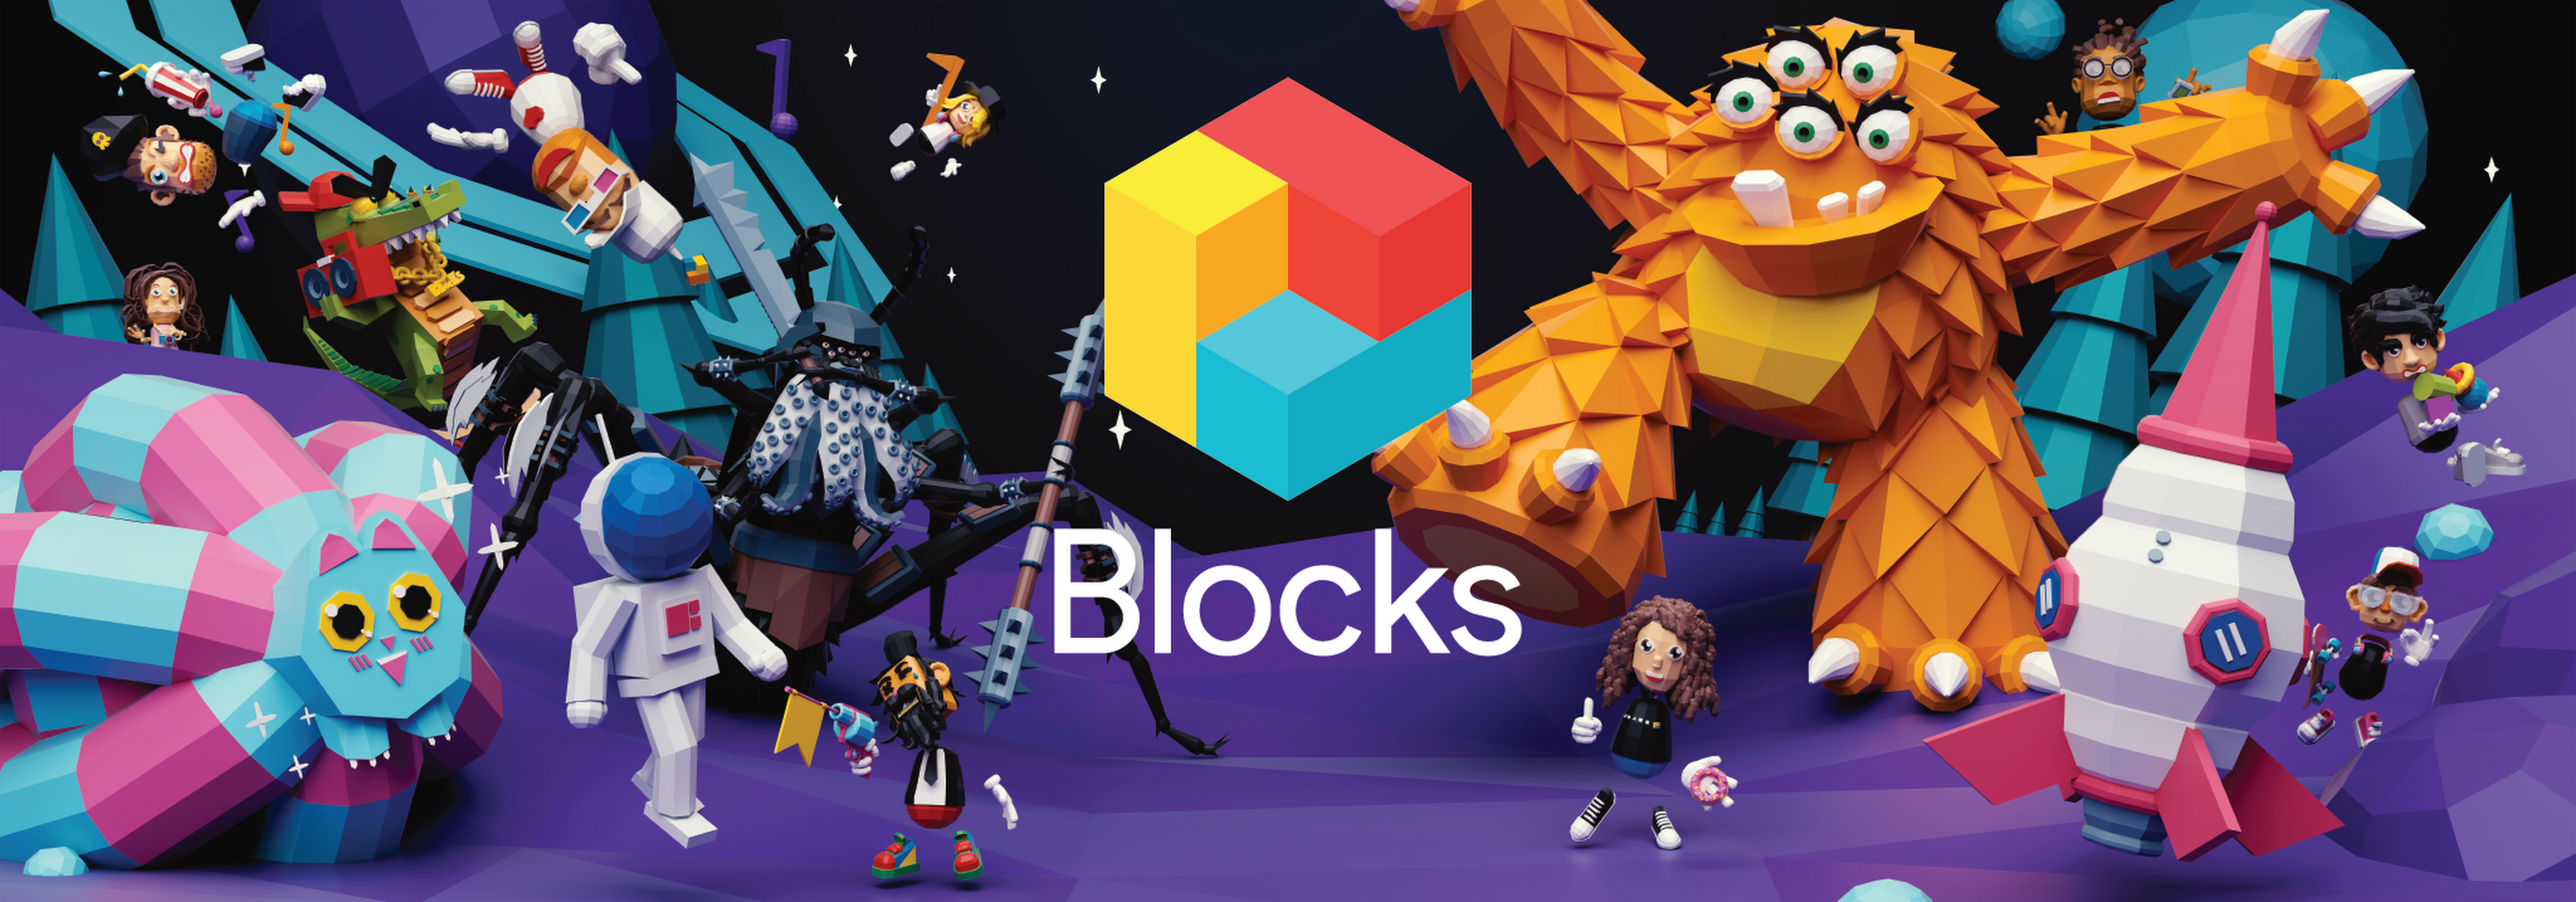 Blocks-Hero.png